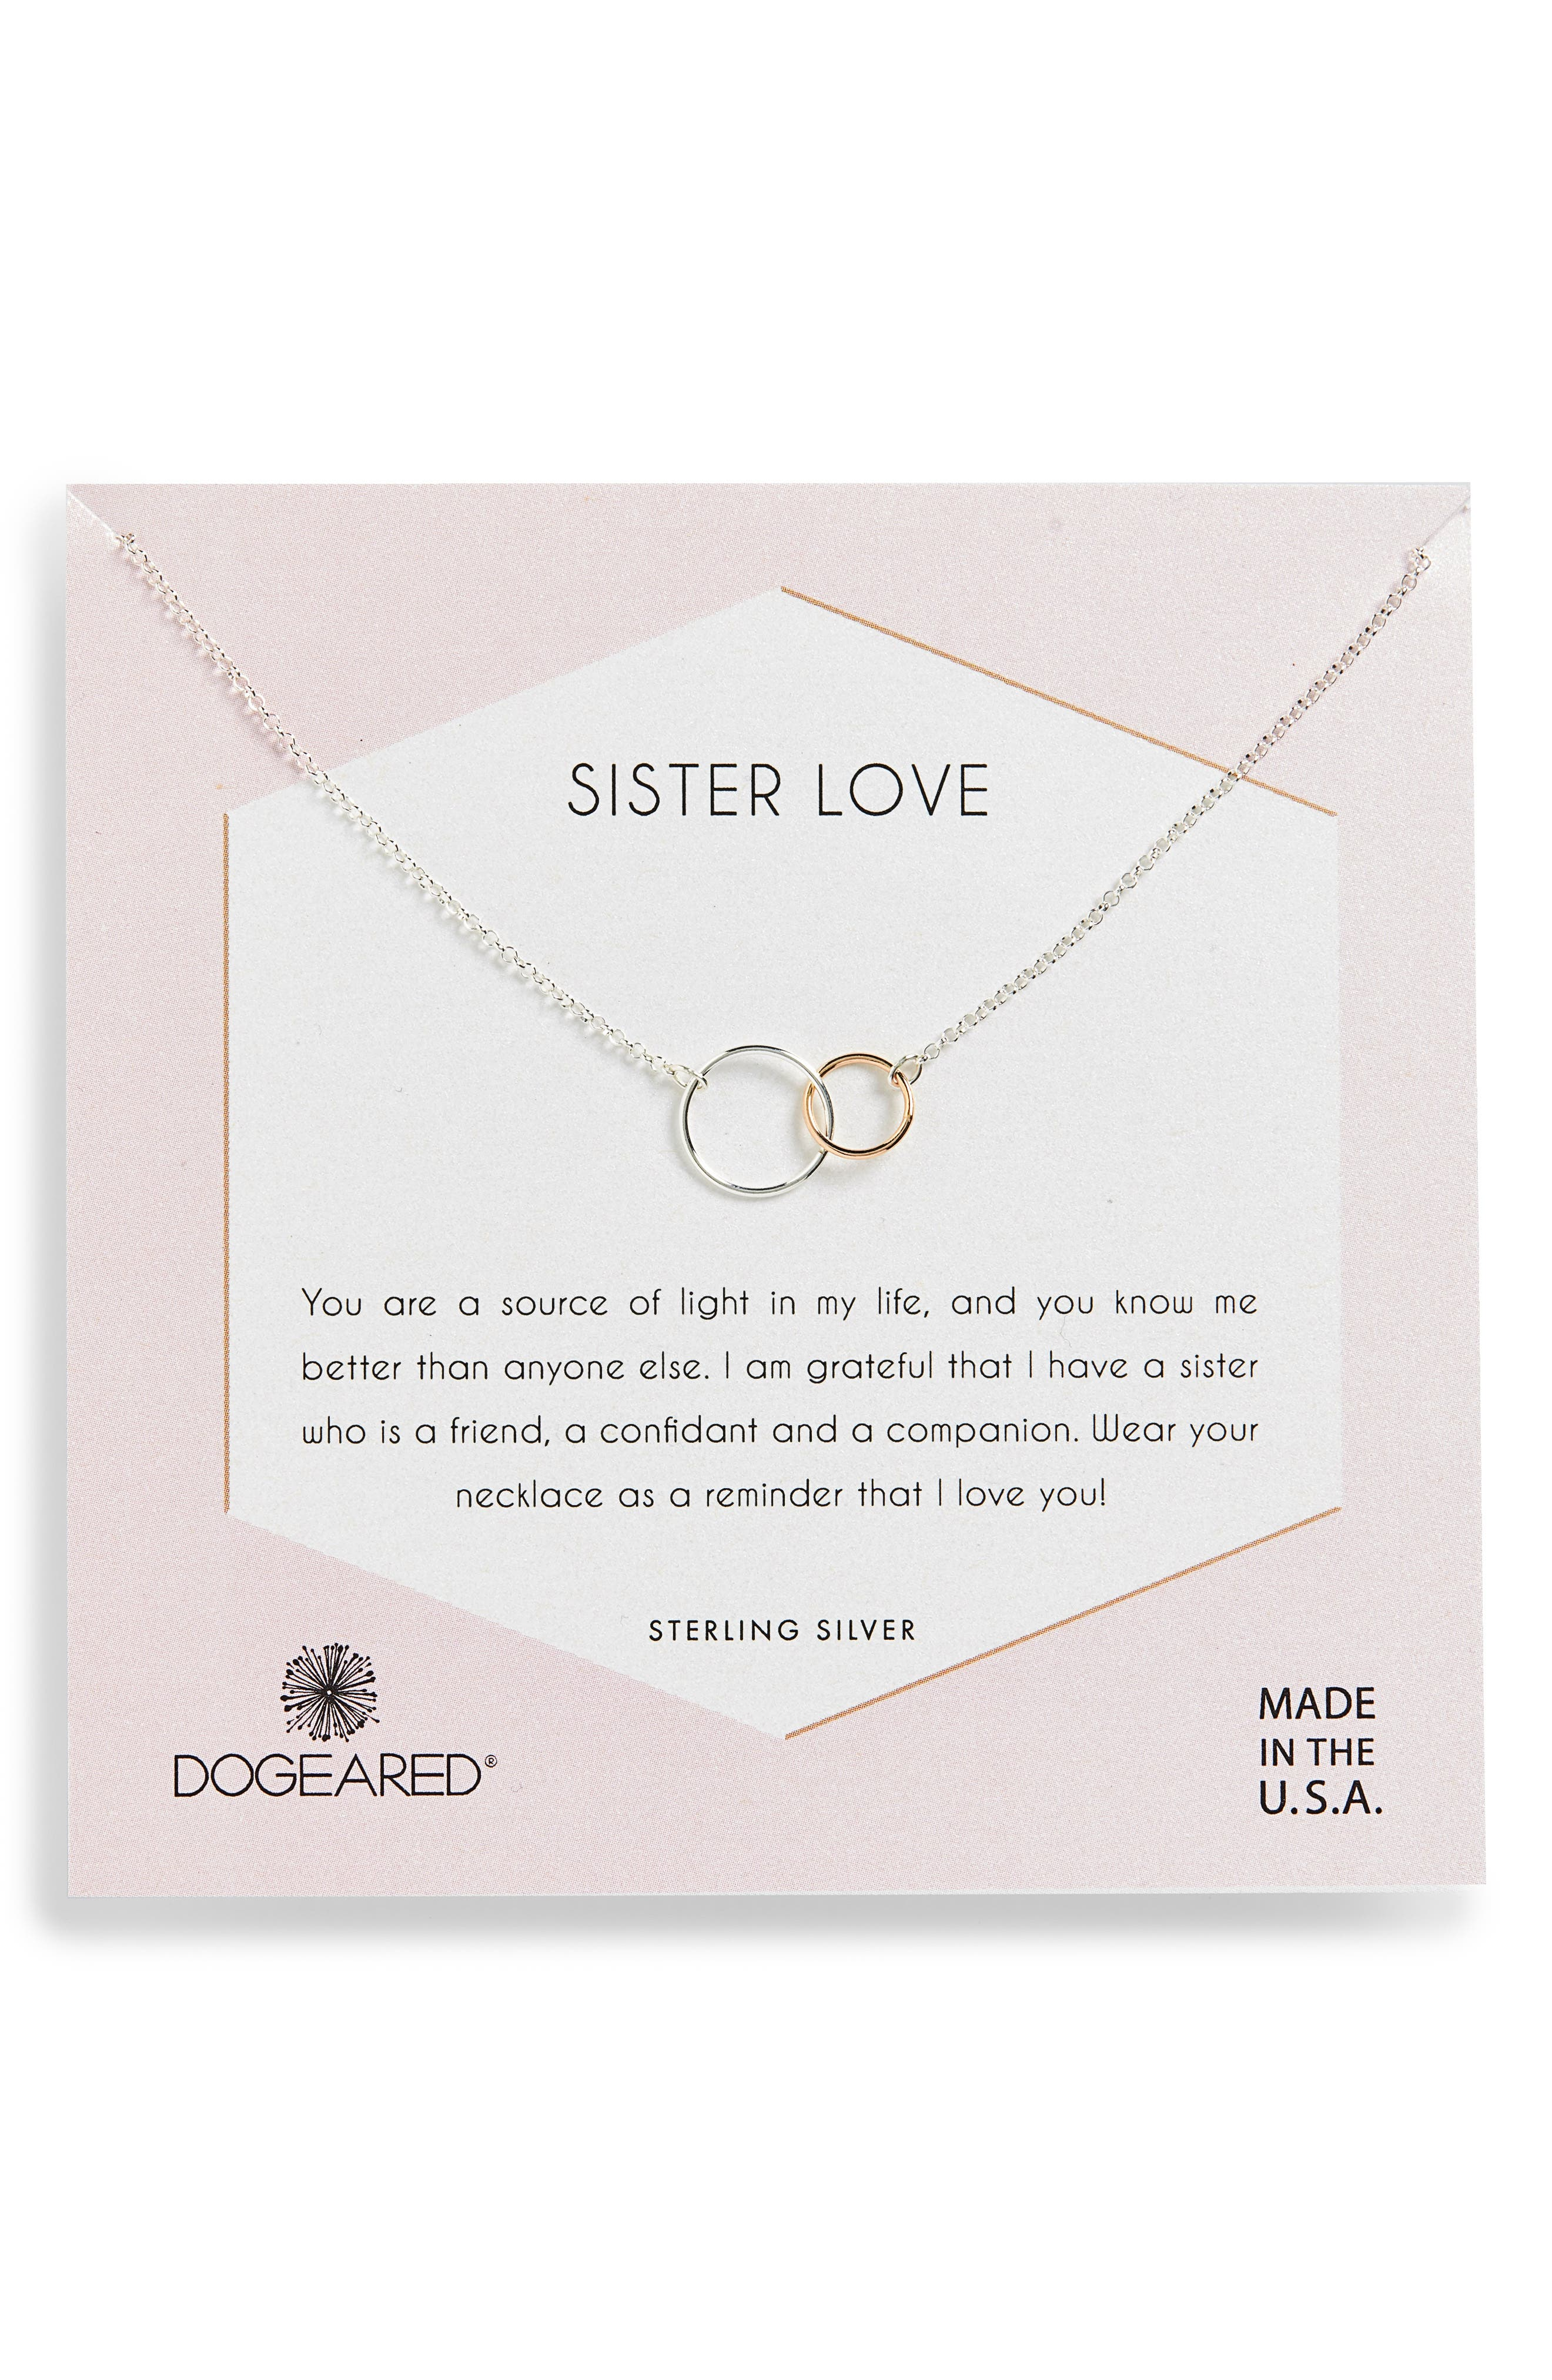 DOGEARED Sister Love Two-Tone Necklace in Silver